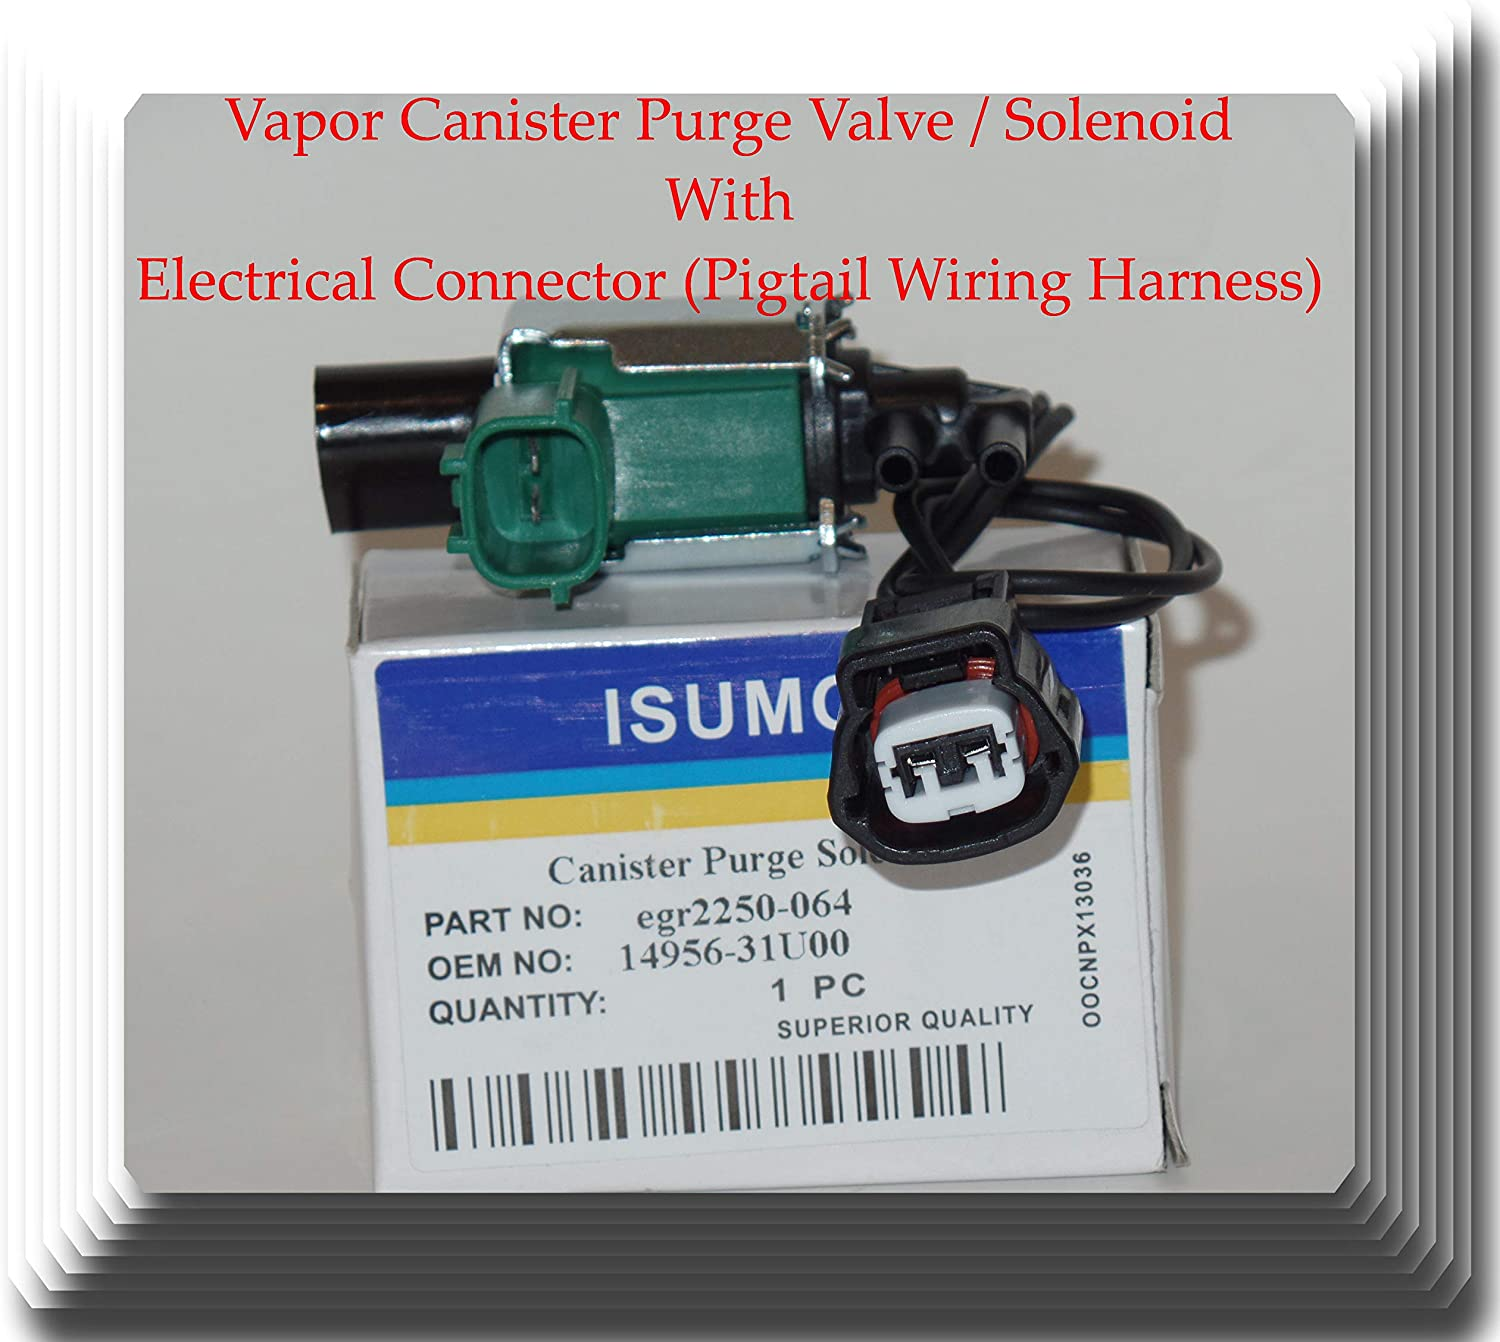 Seattle Mall 14956-31U00 14956-31U01 EGR Valve Control Ranking TOP2 With E Solenoid Switch